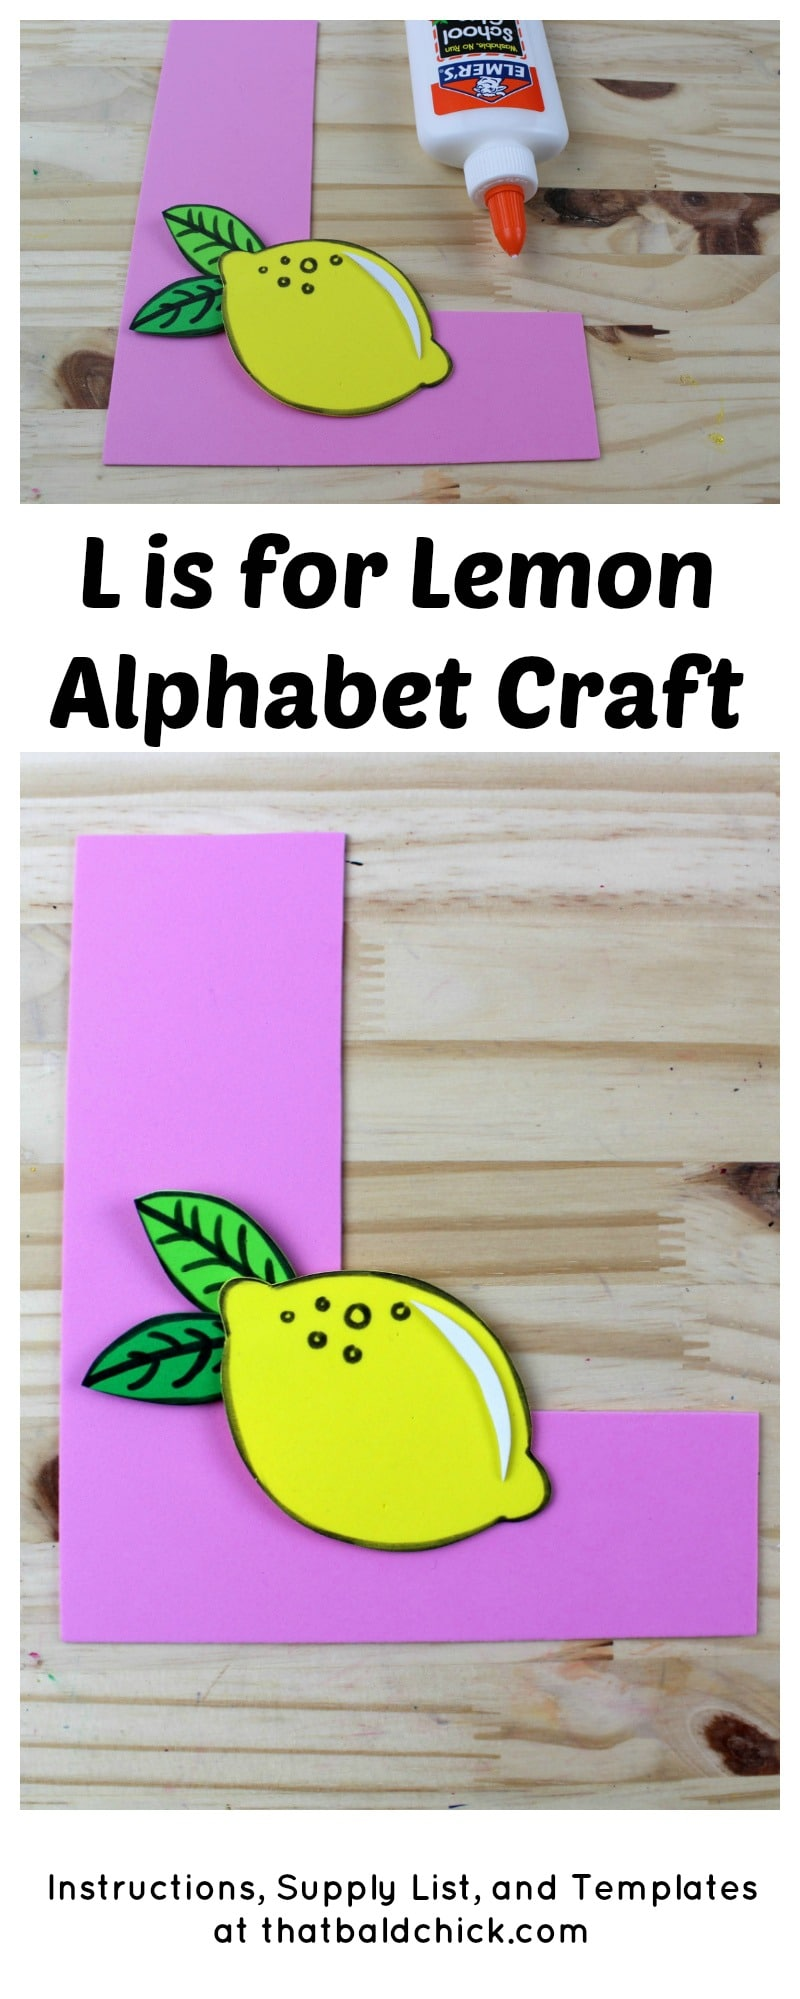 L is for Lemon Alphabet Craft - supply list, instructions, and templates at thatbaldchick.com